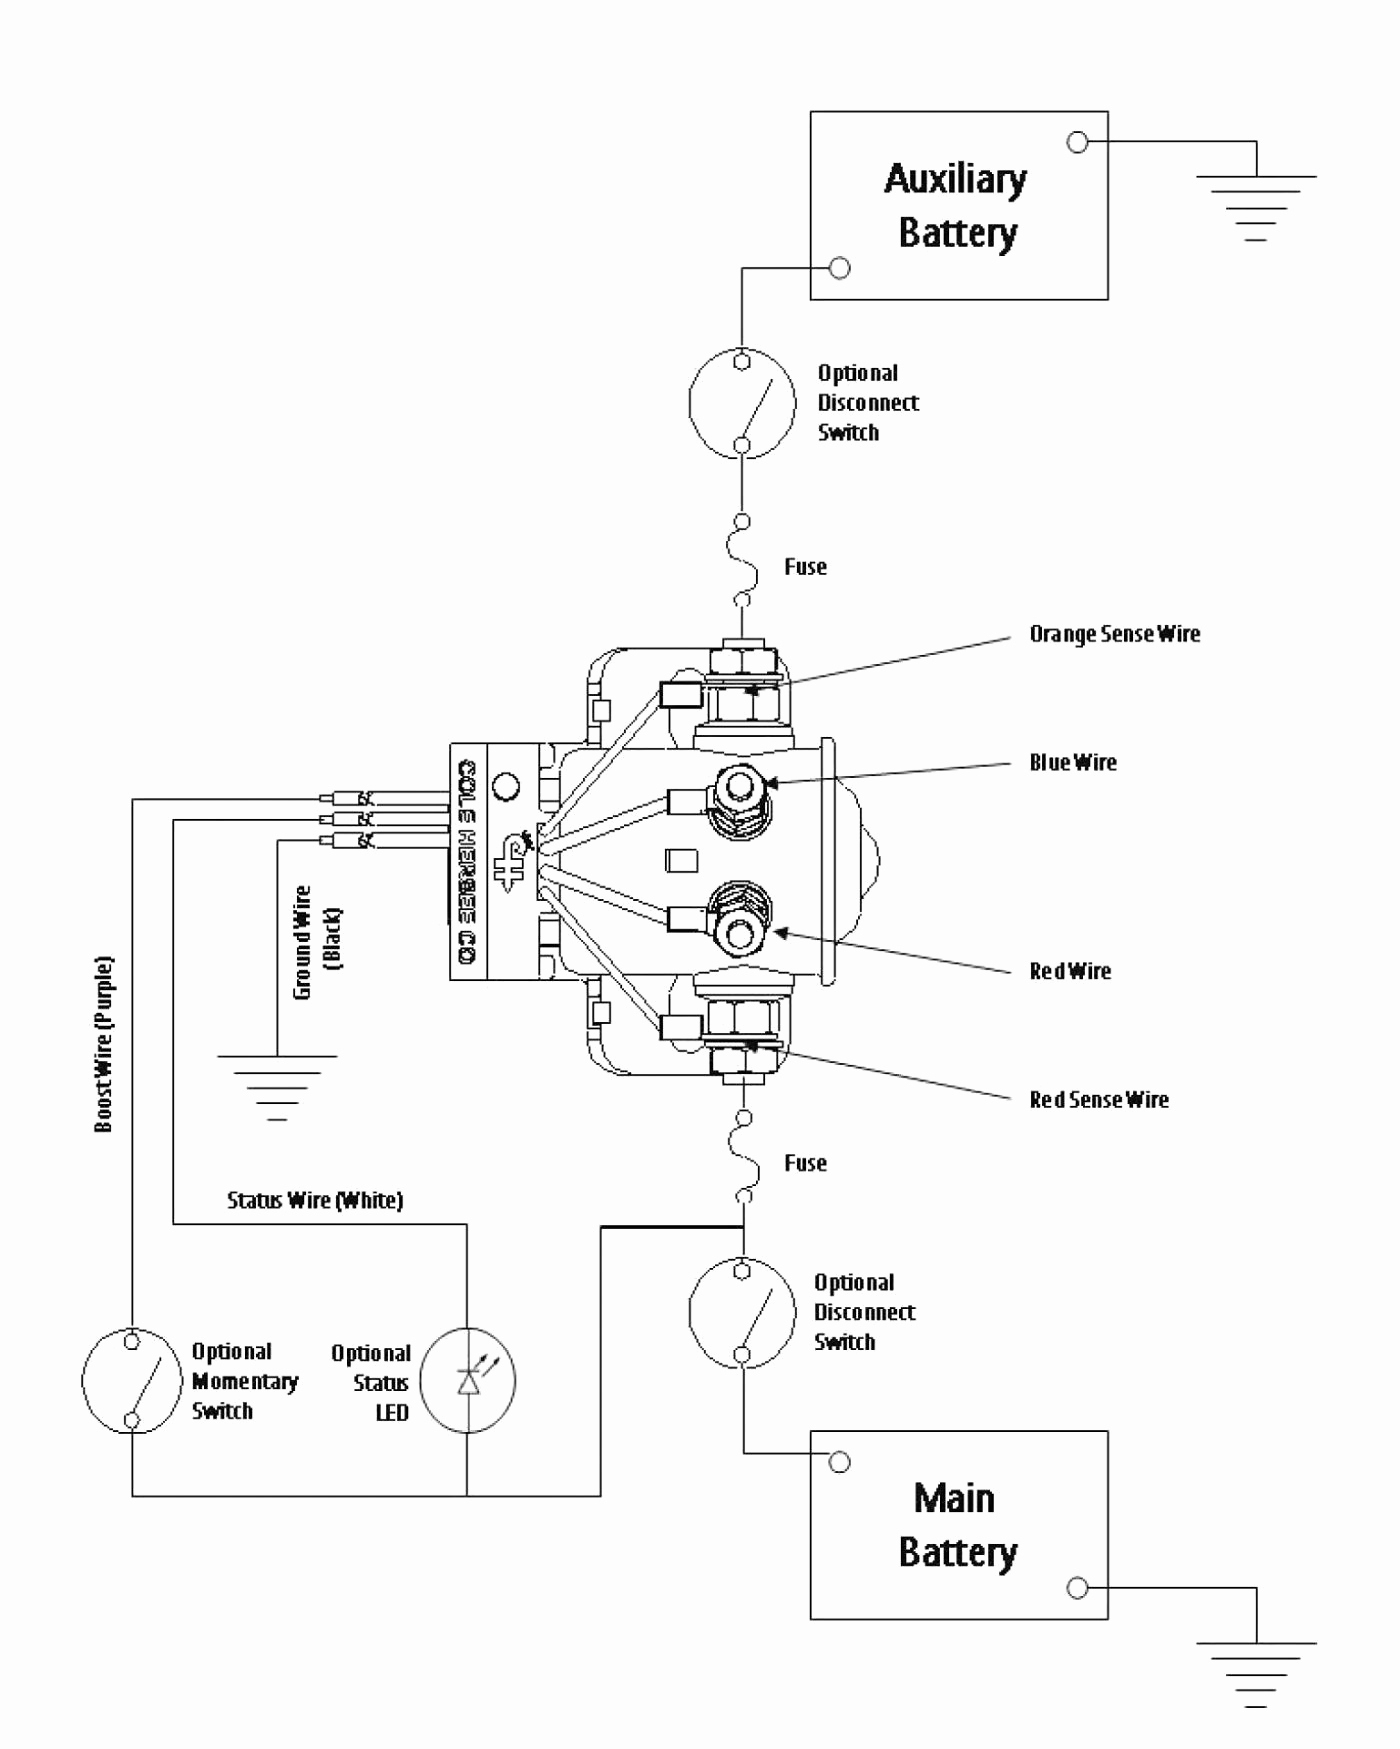 Piranha Dual Battery System Wiring Diagram Elegant Marine Dual - Dual Battery Wiring Diagram